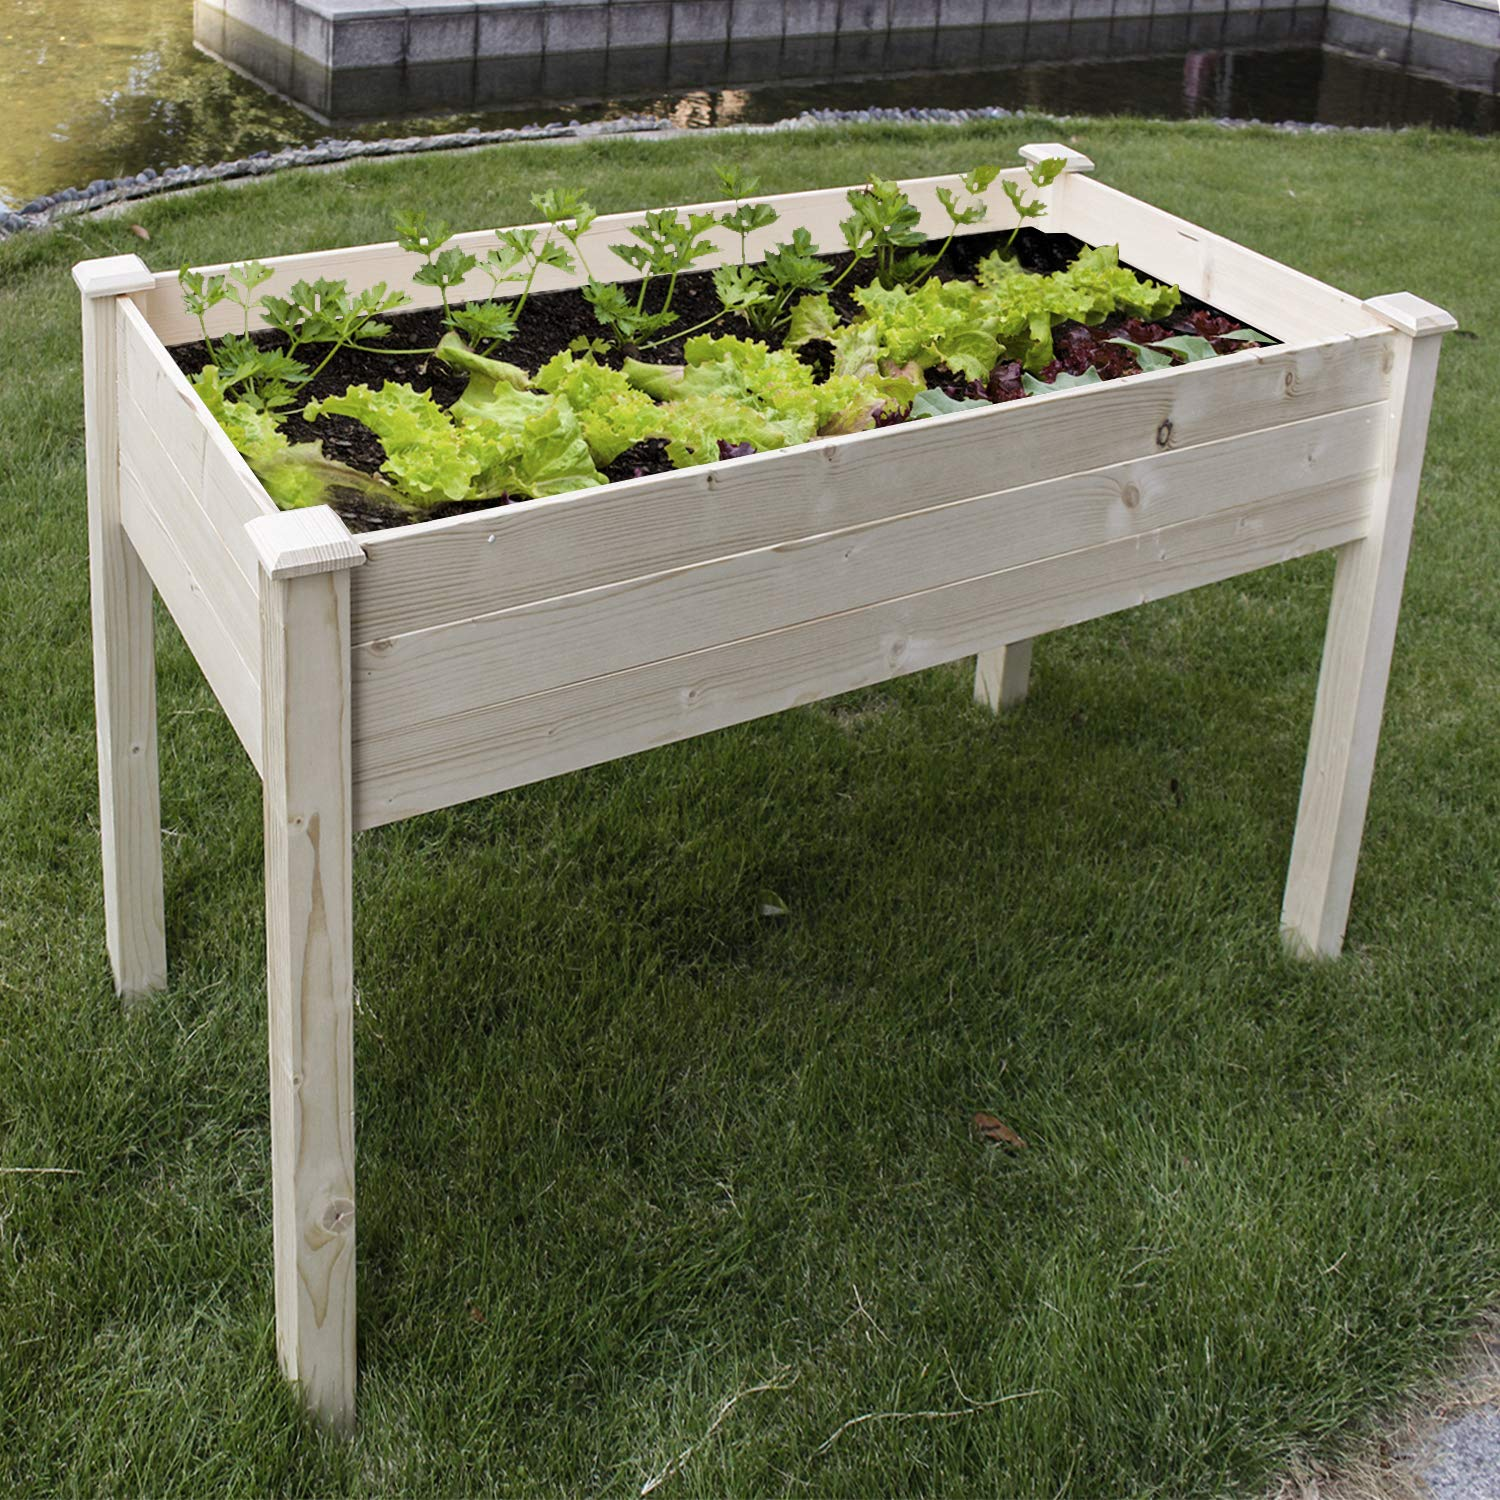 COZUHAUSE Solid Wood Raised Garden Bed for Vegetable Flower Fruit 48 L 22 W 30 H Box Nature Wood 30